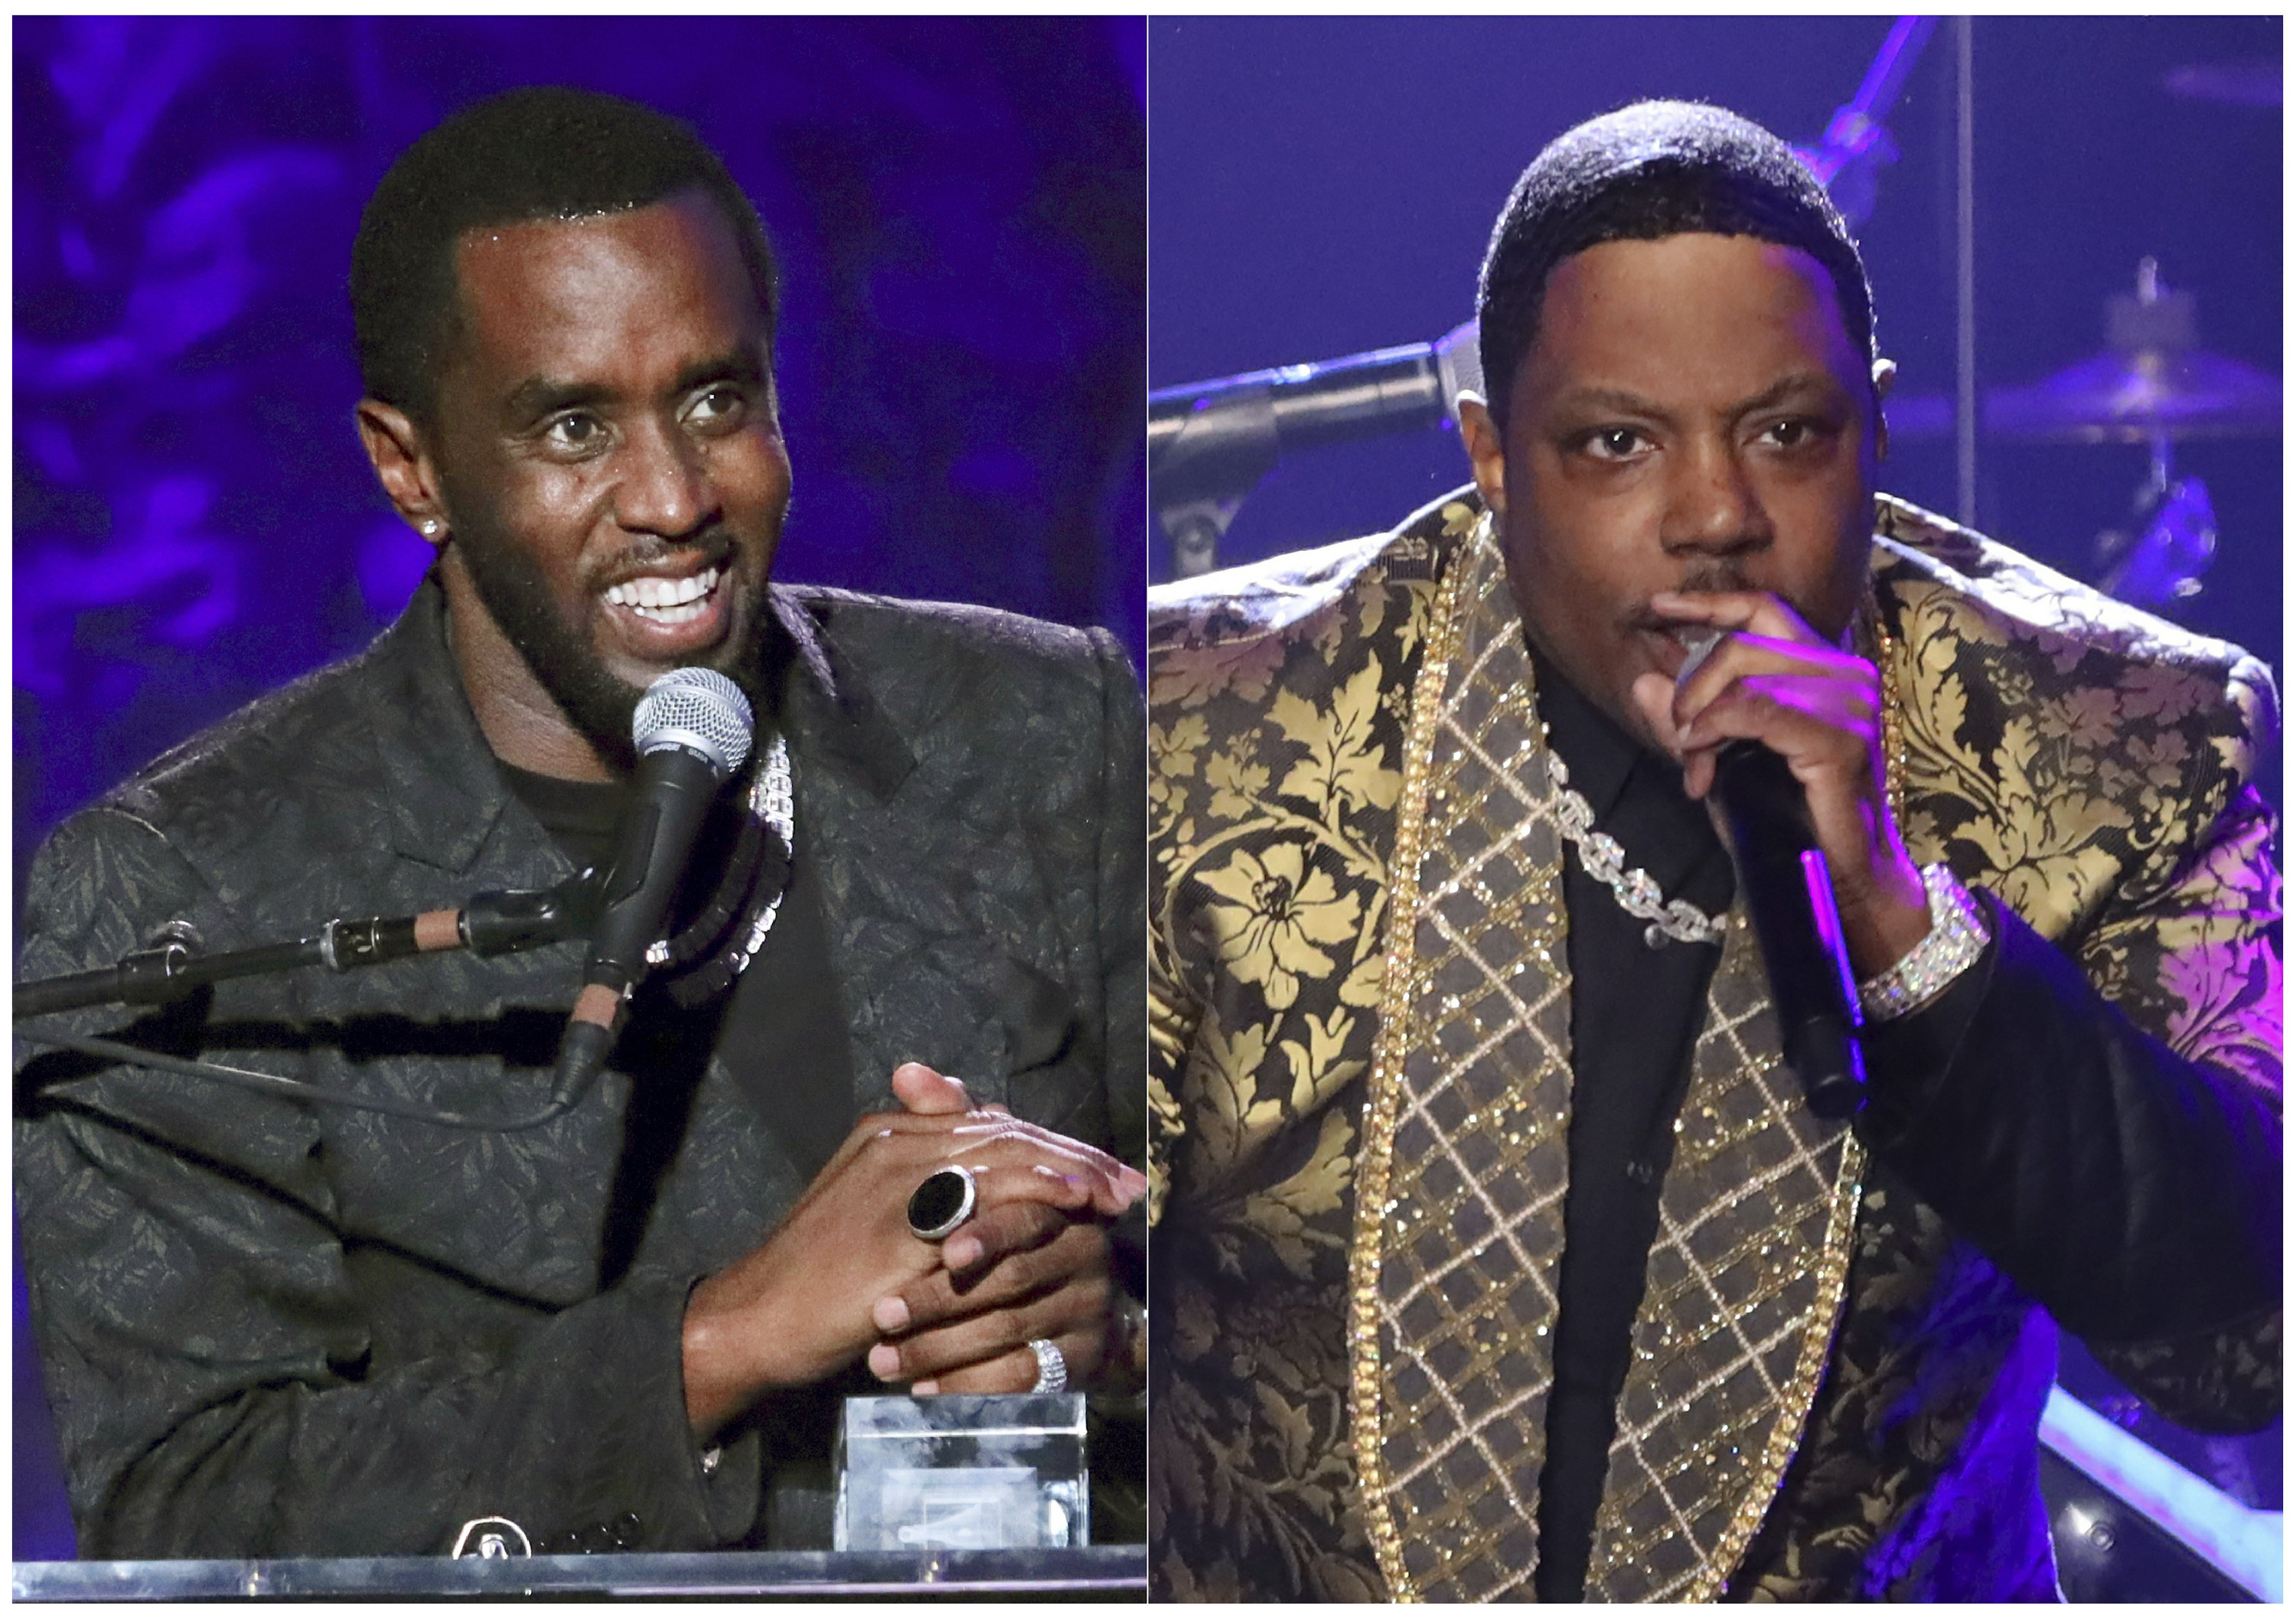 Rapper Mase calls out Diddy over publishing rights - The Associated Press